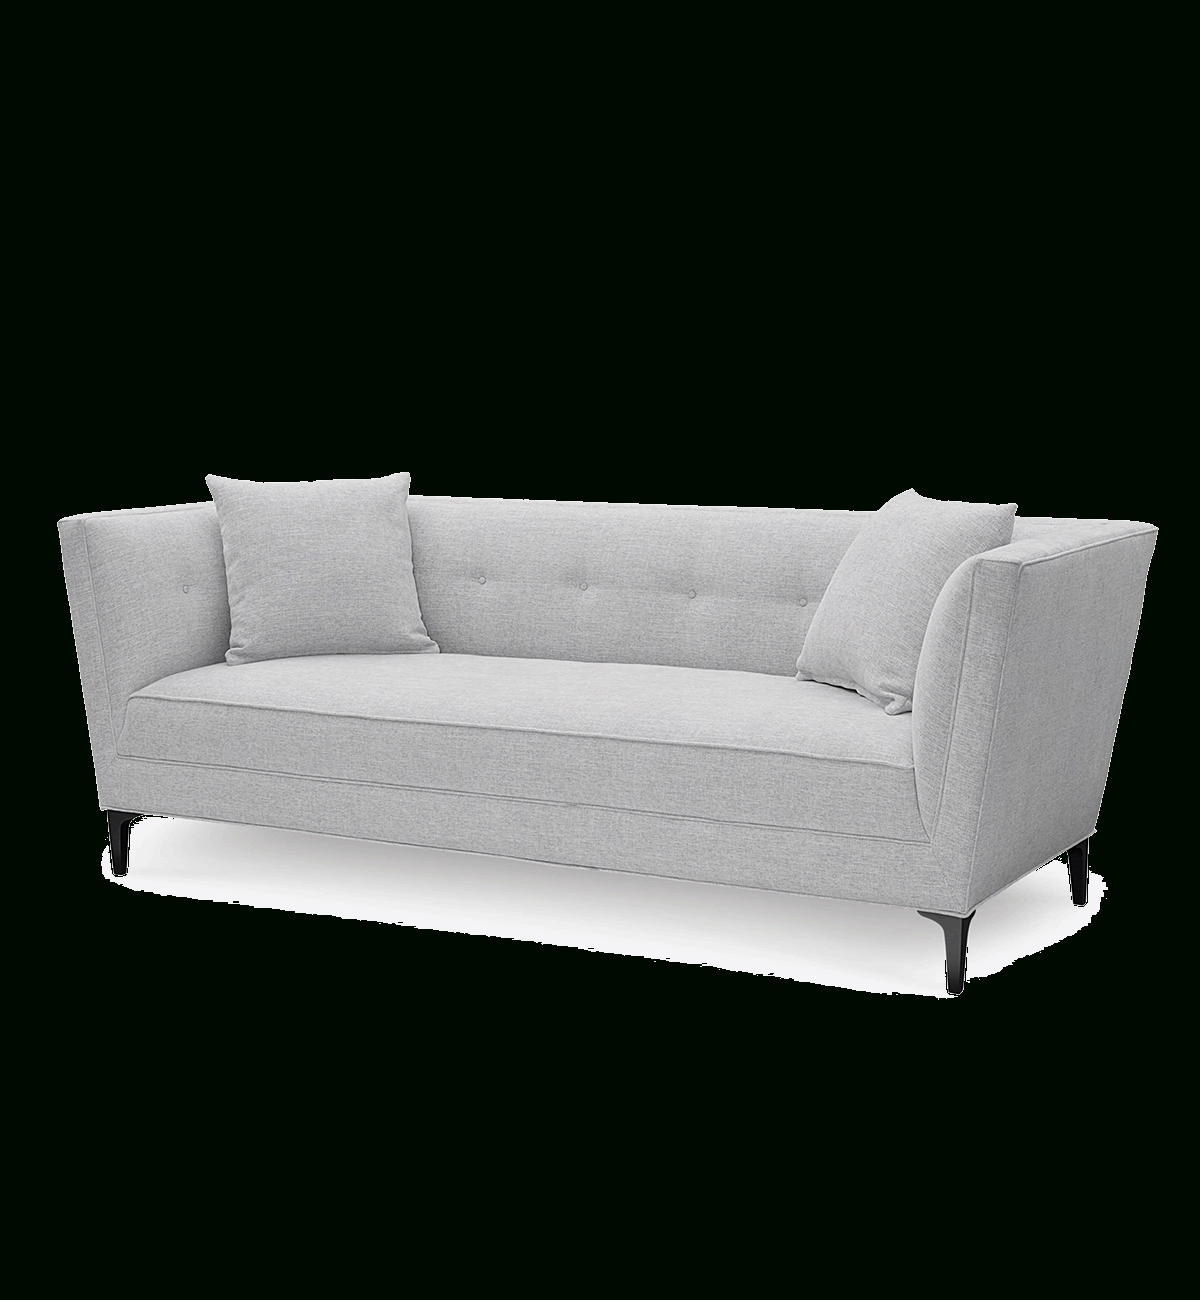 Current Macys Sofas Inside Couches And Sofas – Macy's (View 10 of 20)